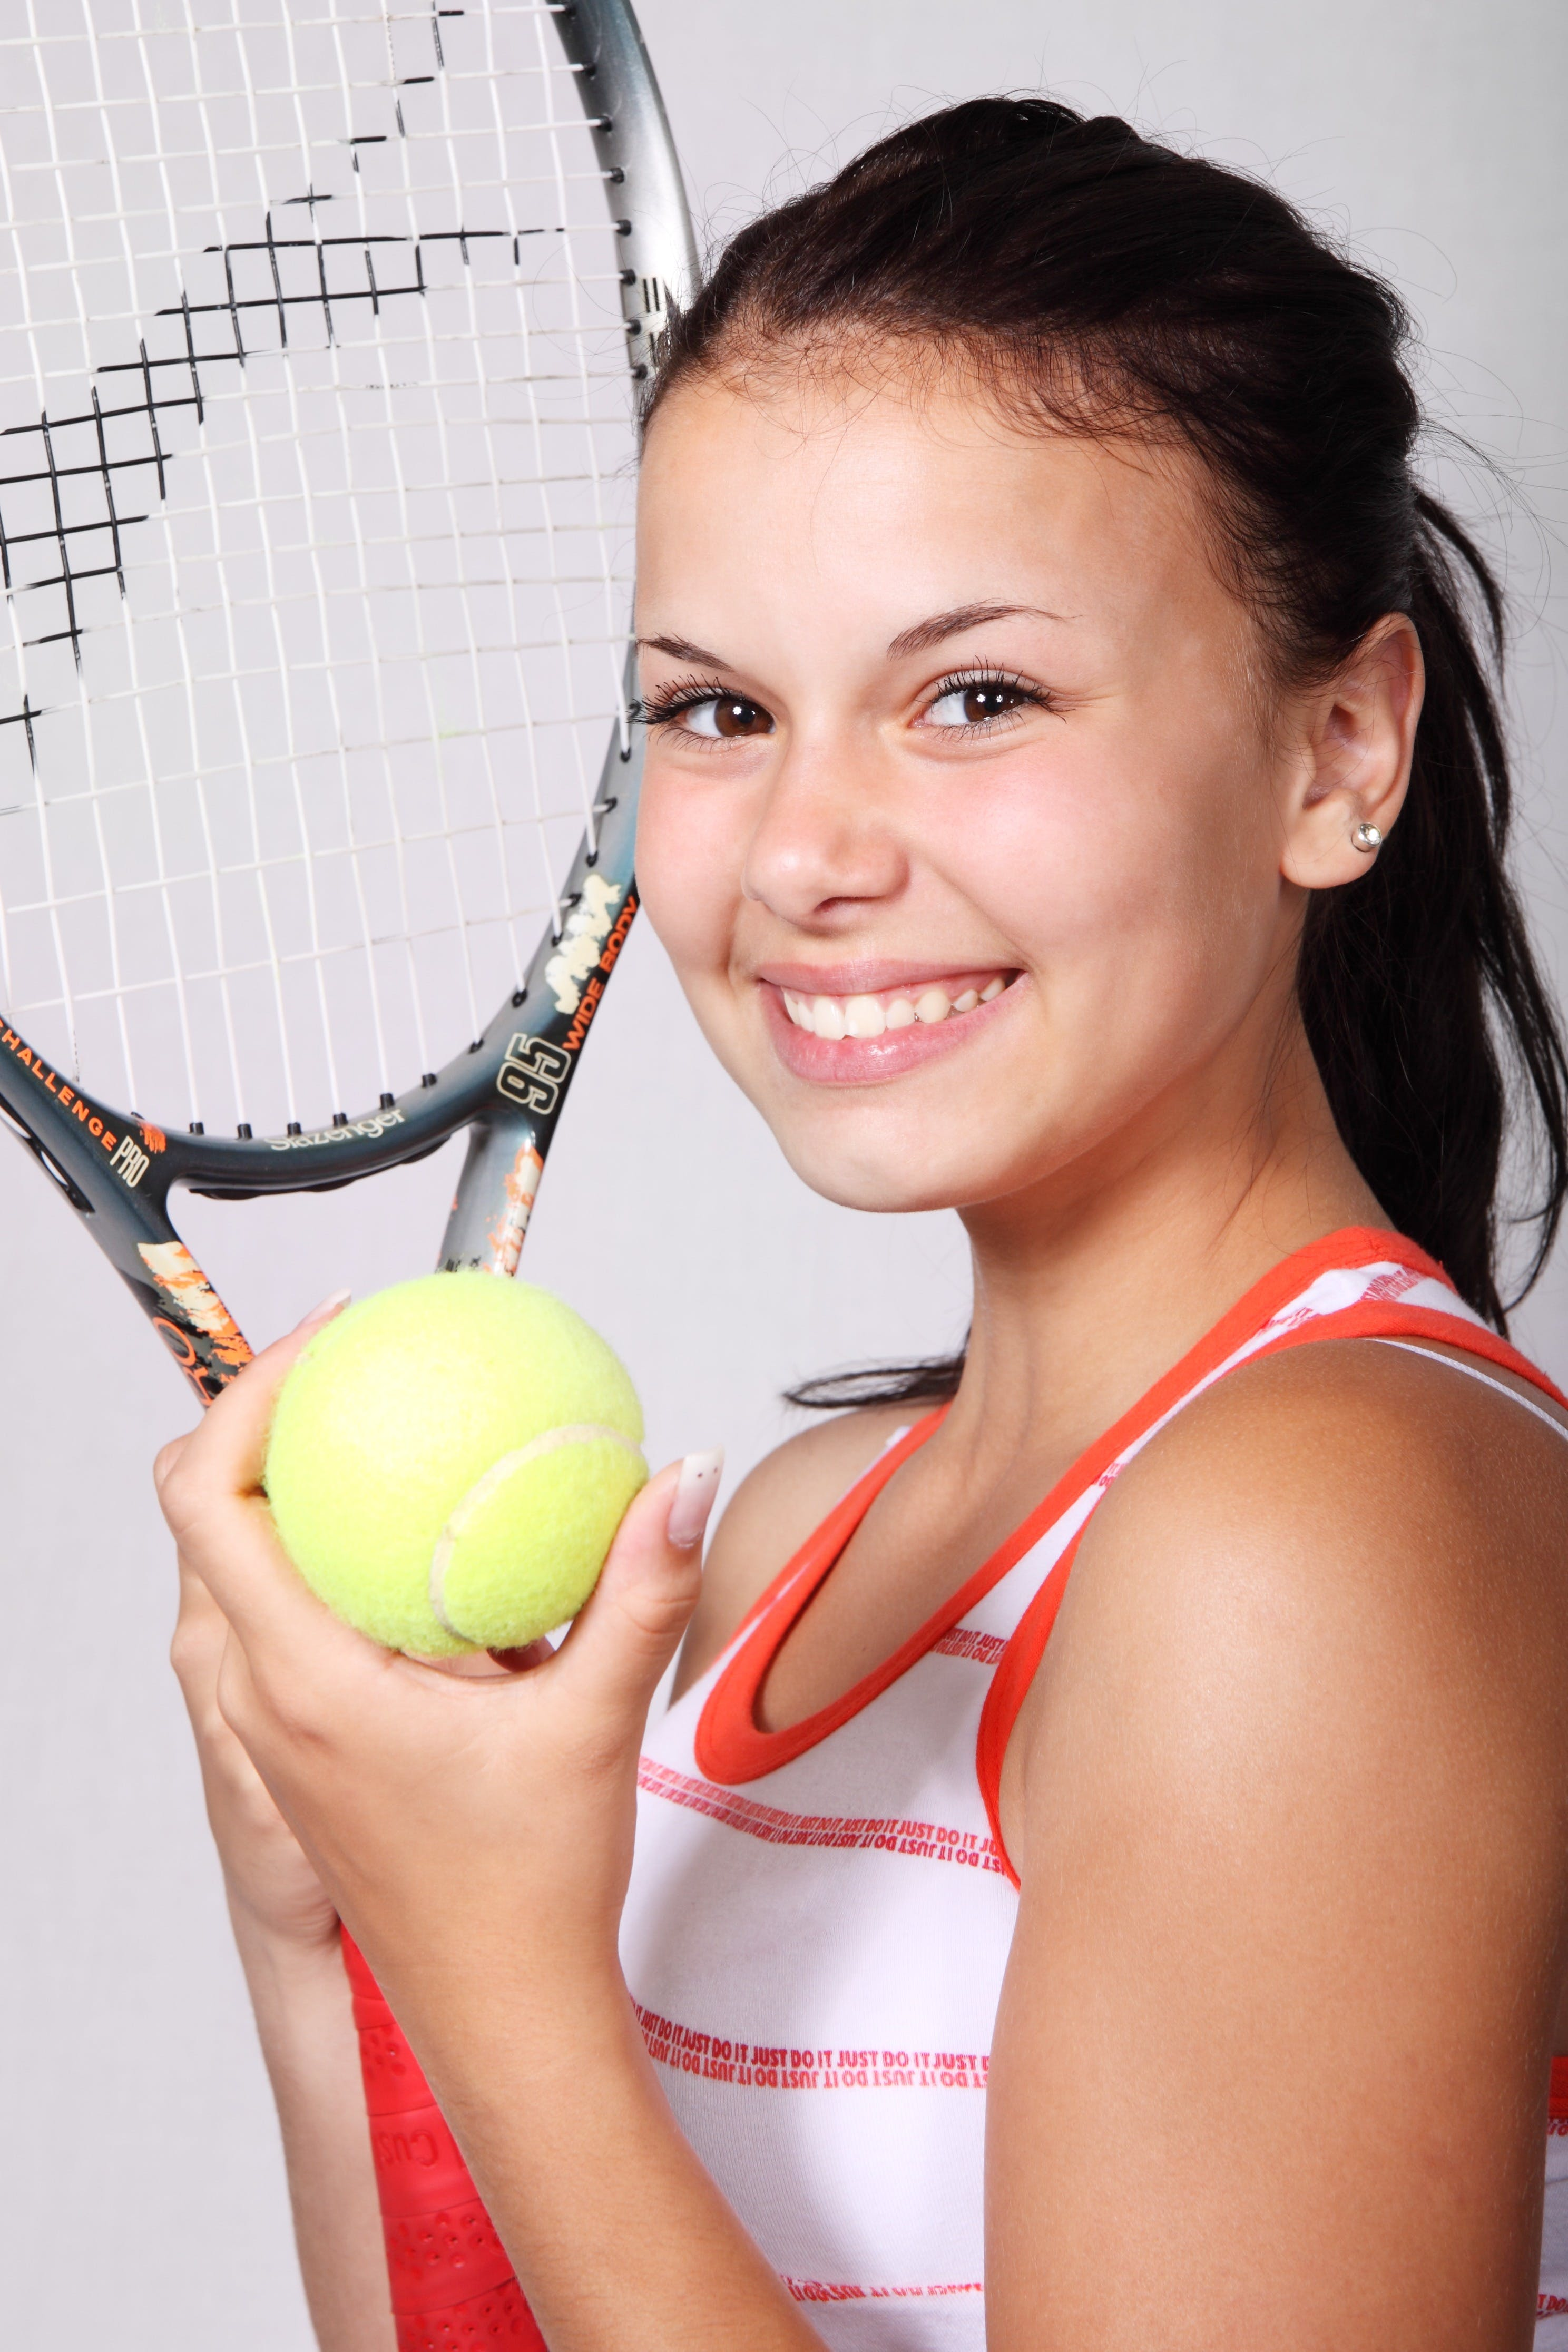 Girl in White and Orange Stripe Tank Top Holding Black Tennis Racket